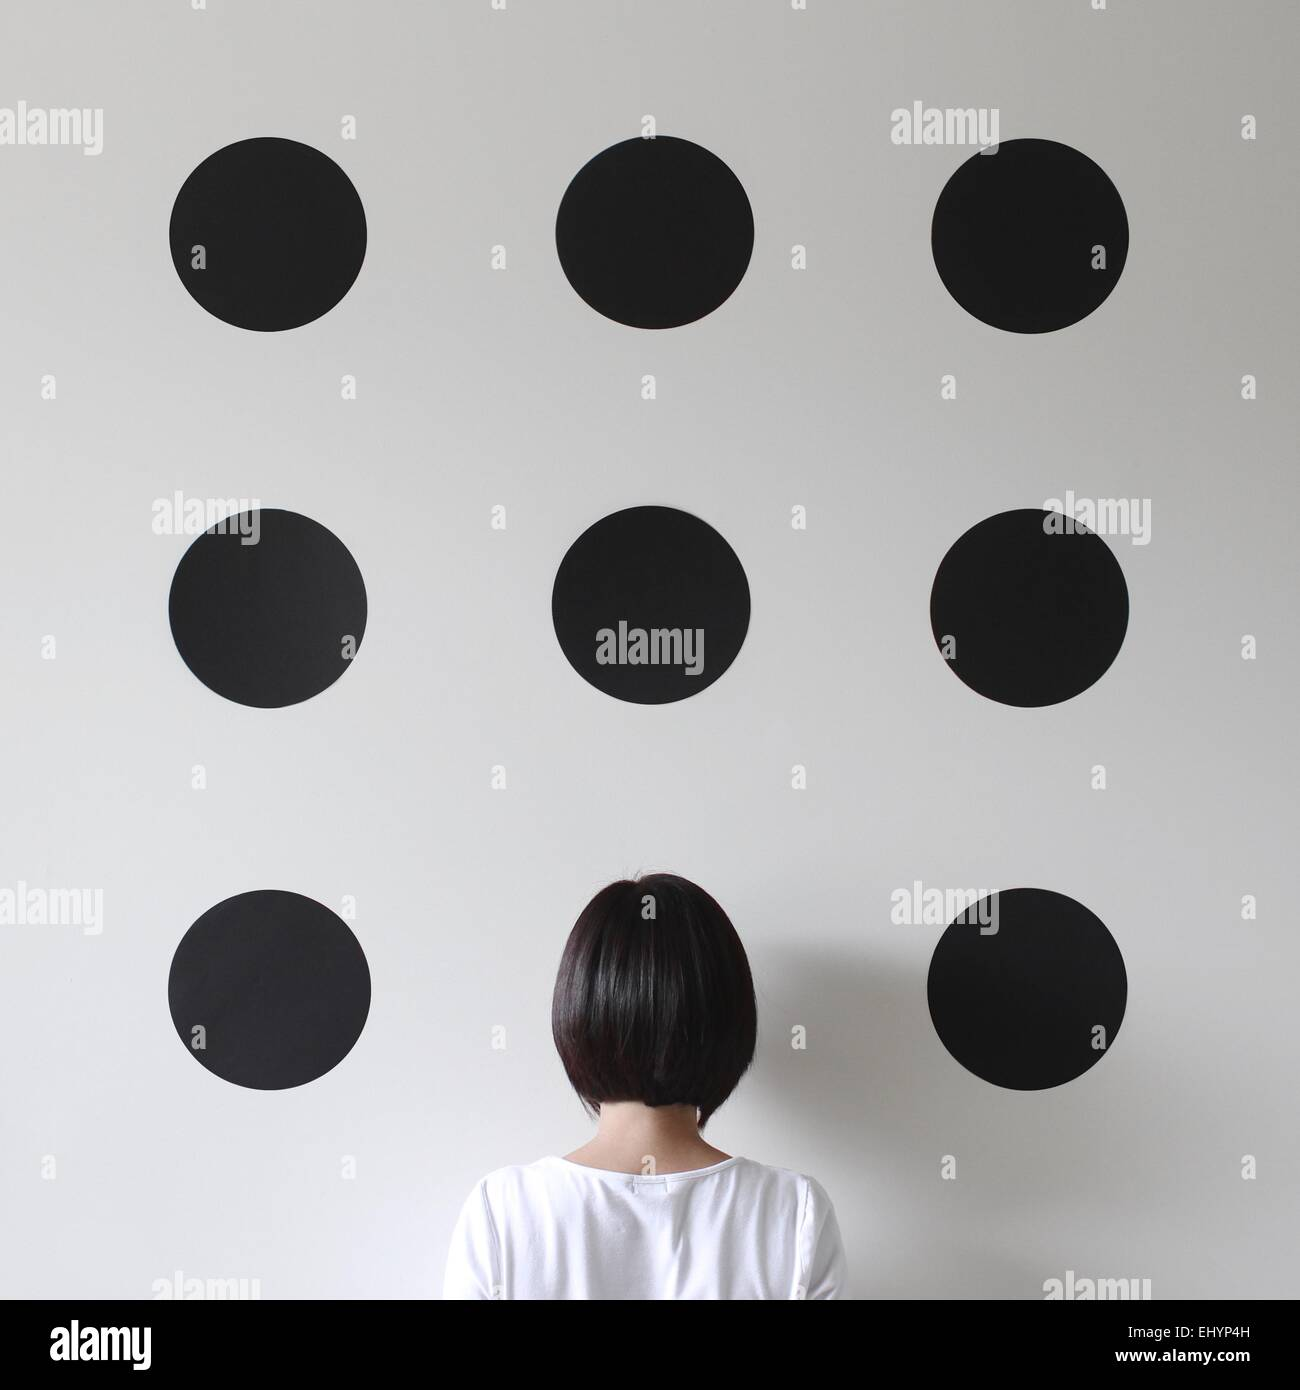 Woman facing a wall with dots - Stock Image